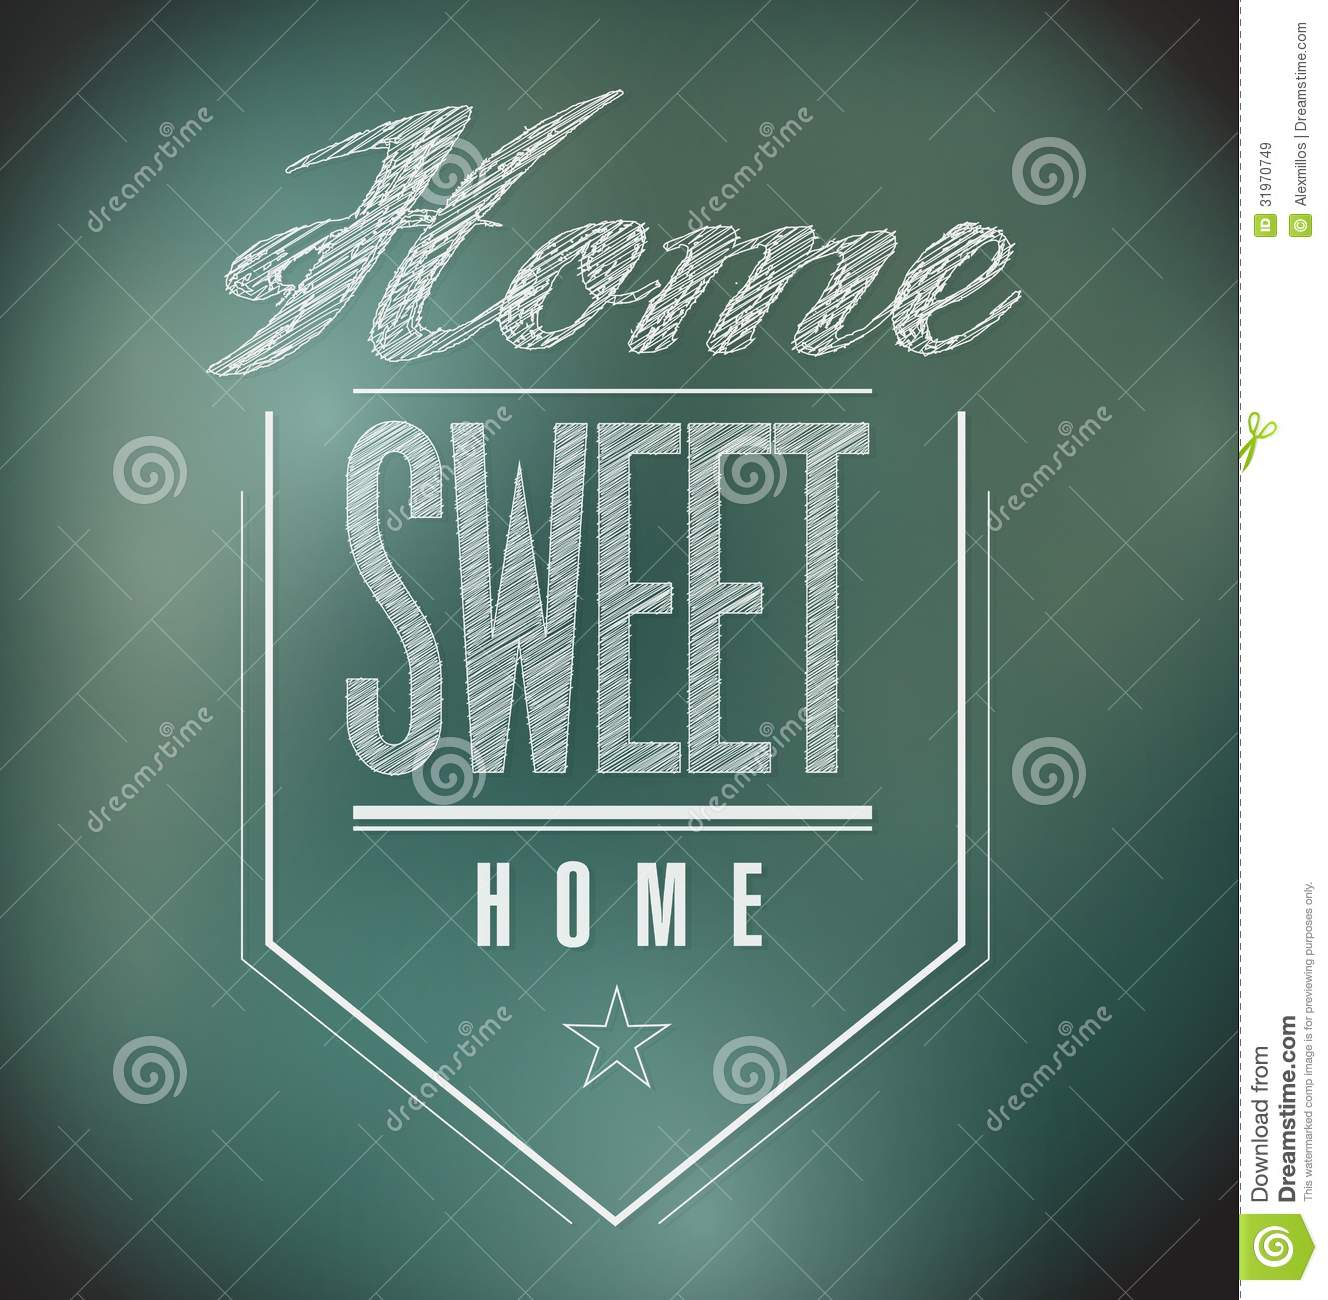 Home Sweet Home Vintage chalkboard vintage home sweet home sign poster royalty free stock